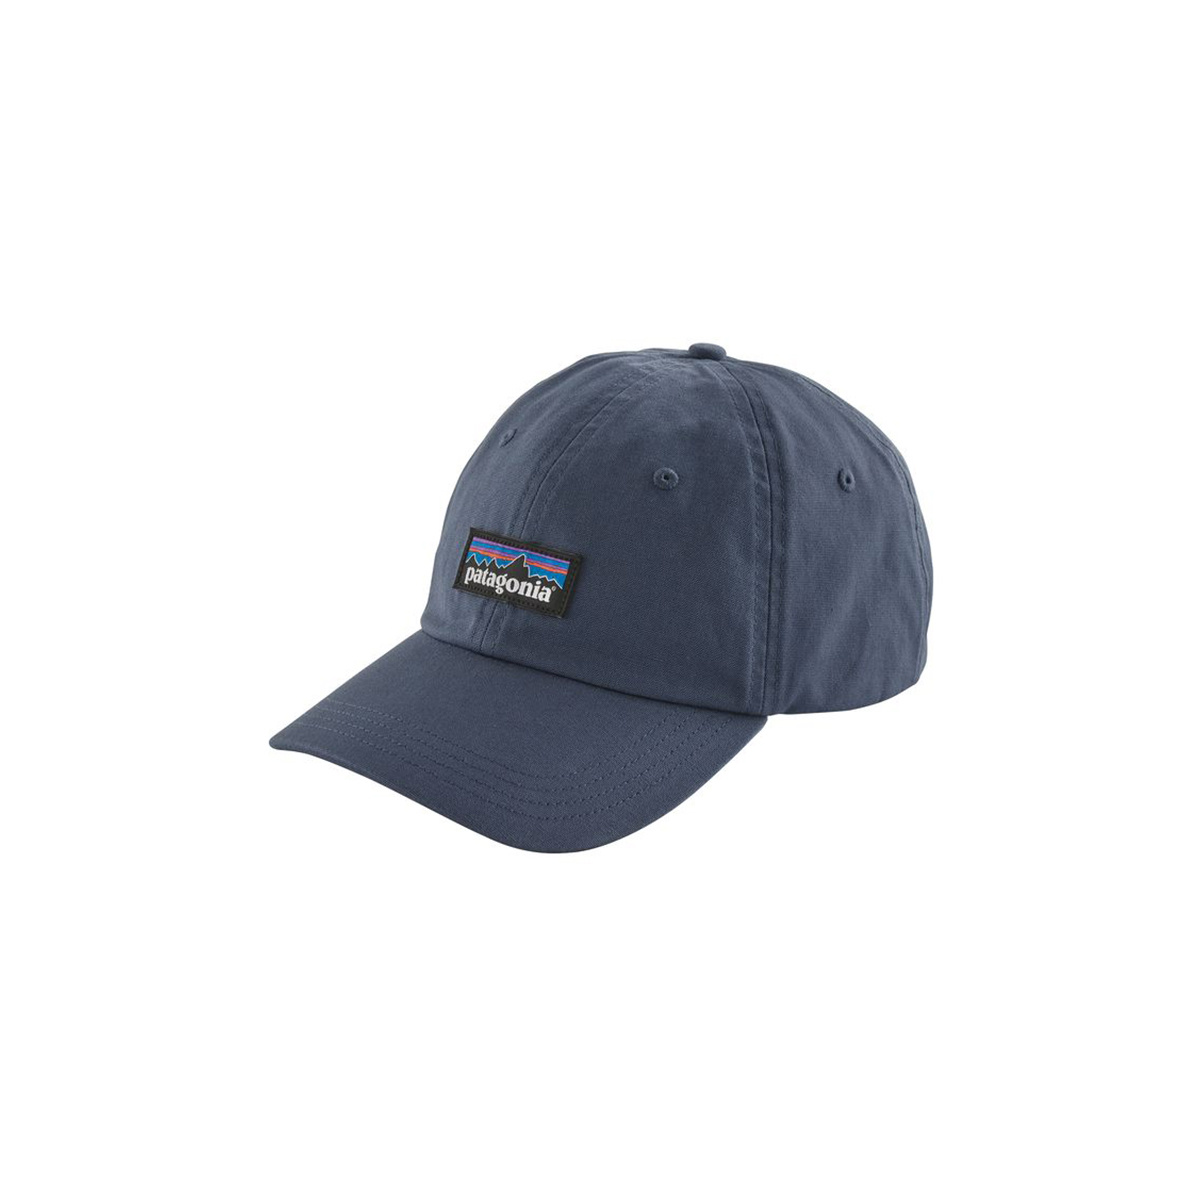 185d8ae959f27 Patagonia P-6 Label Trad Cap - Gearhead Outfitters